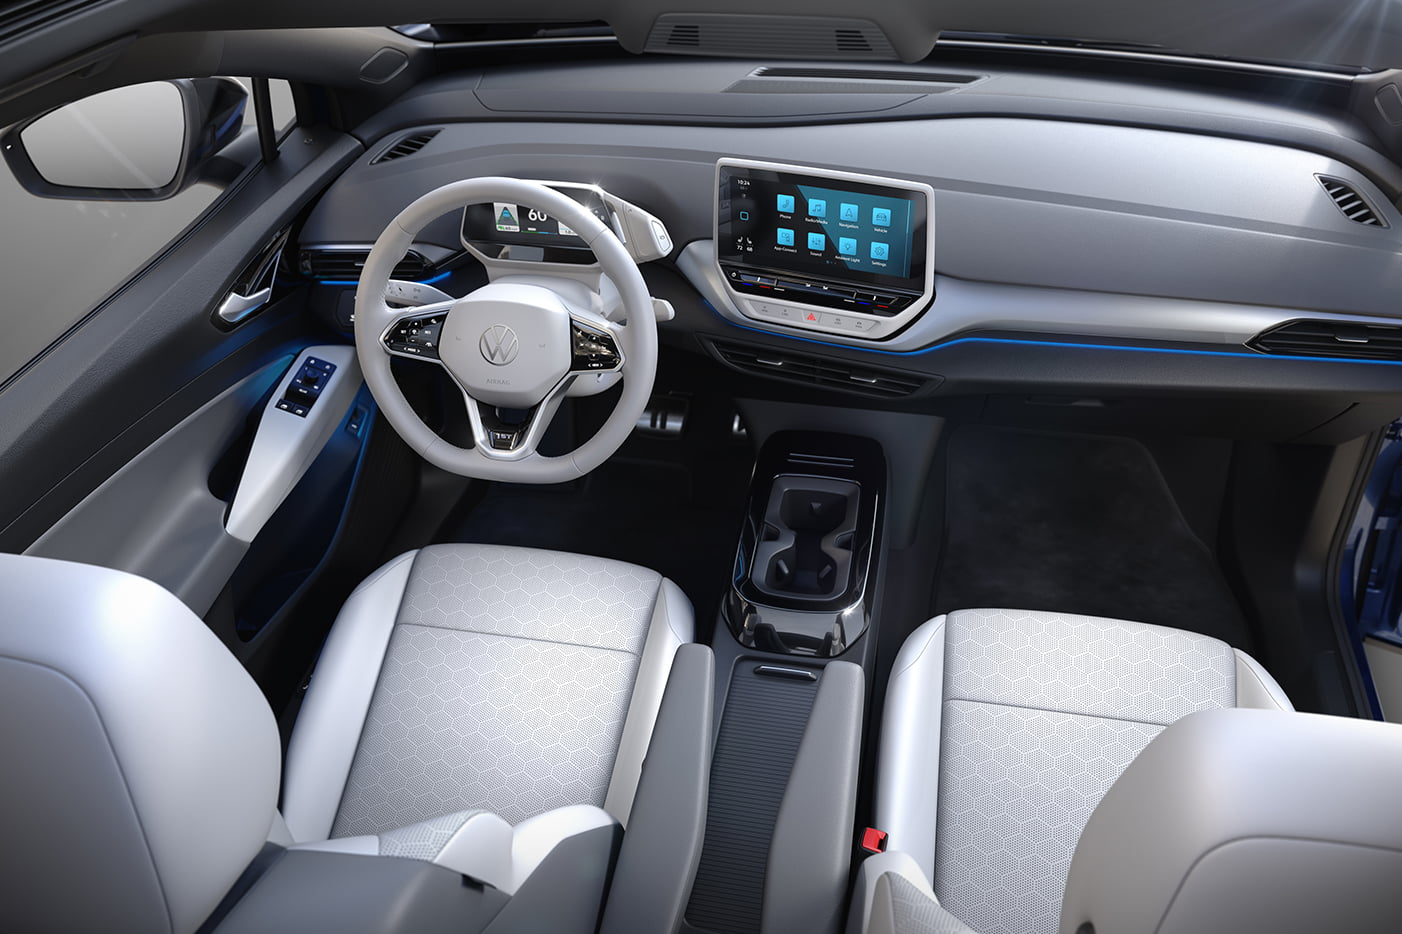 2021 Volkswagen ID.4 Electric SUV: Price, Specs, and More ...